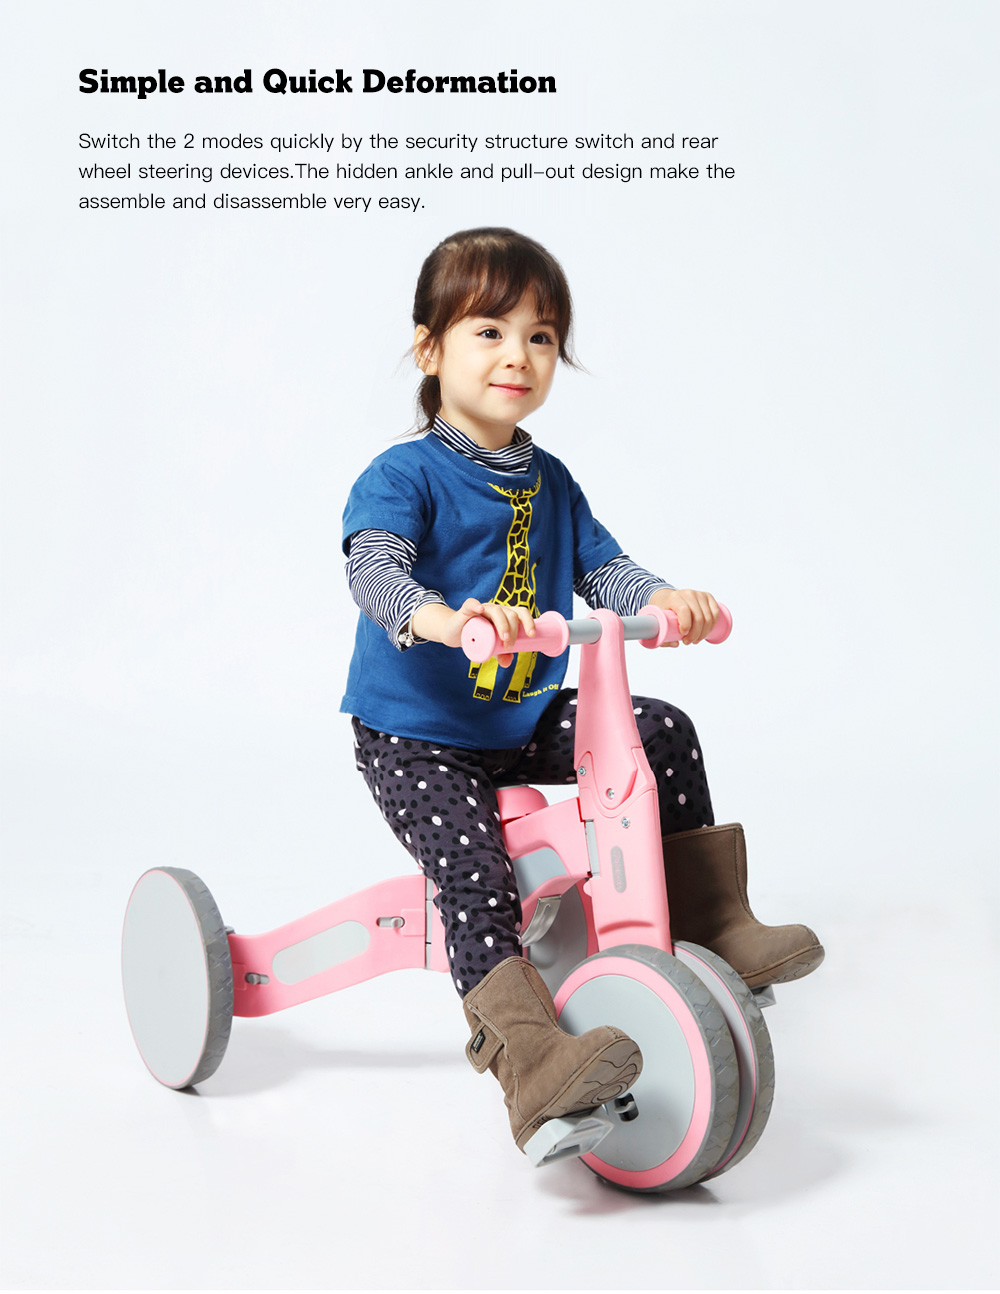 Xiaomi Youpin Kids Deformable Dual Mode Bike Offered For